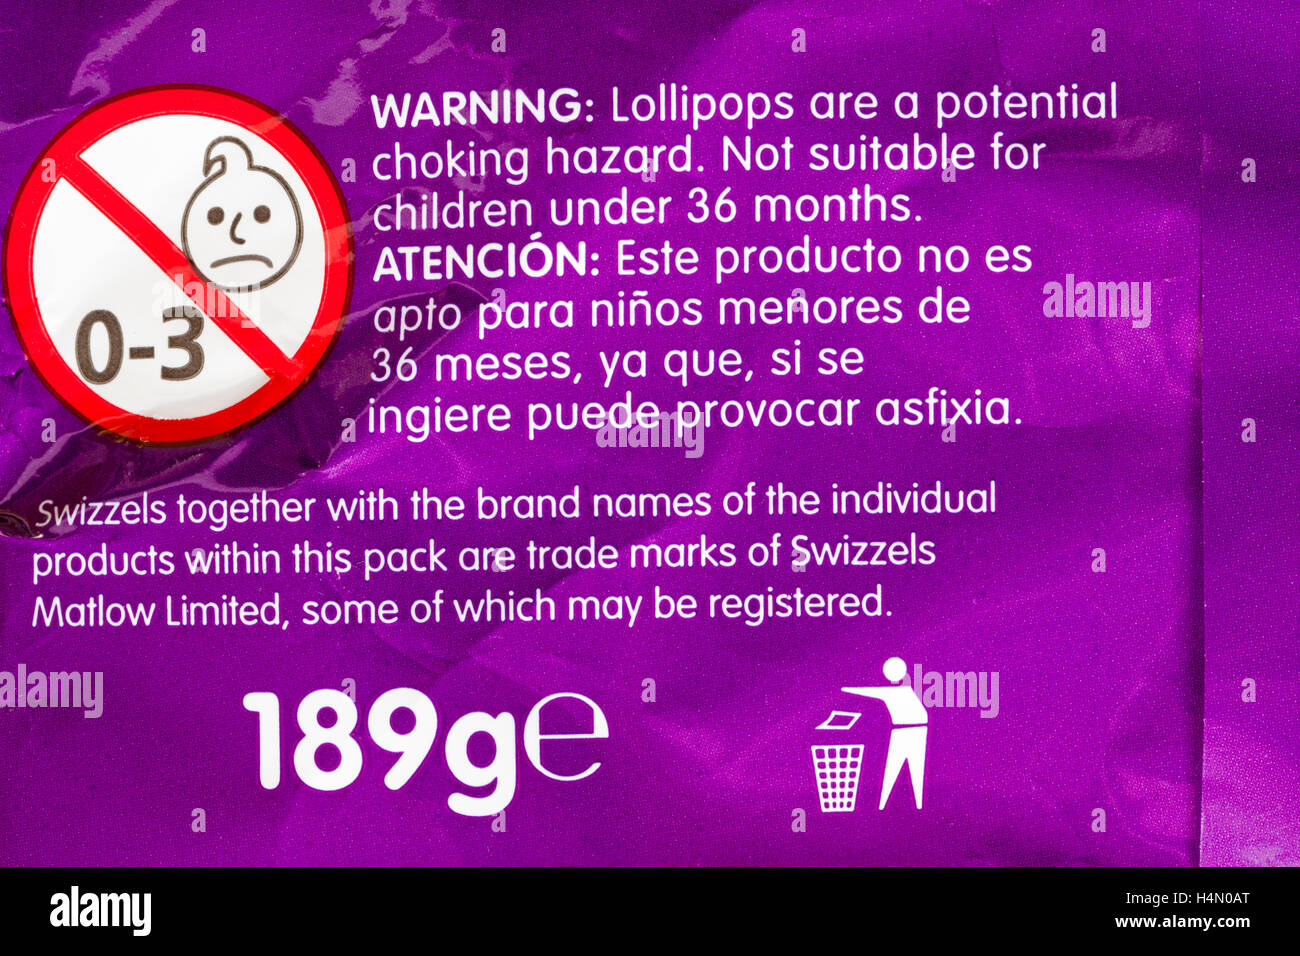 Warning lollipops are a potential choking hazard - information on pack of Swizzels loadsa chews - Stock Image